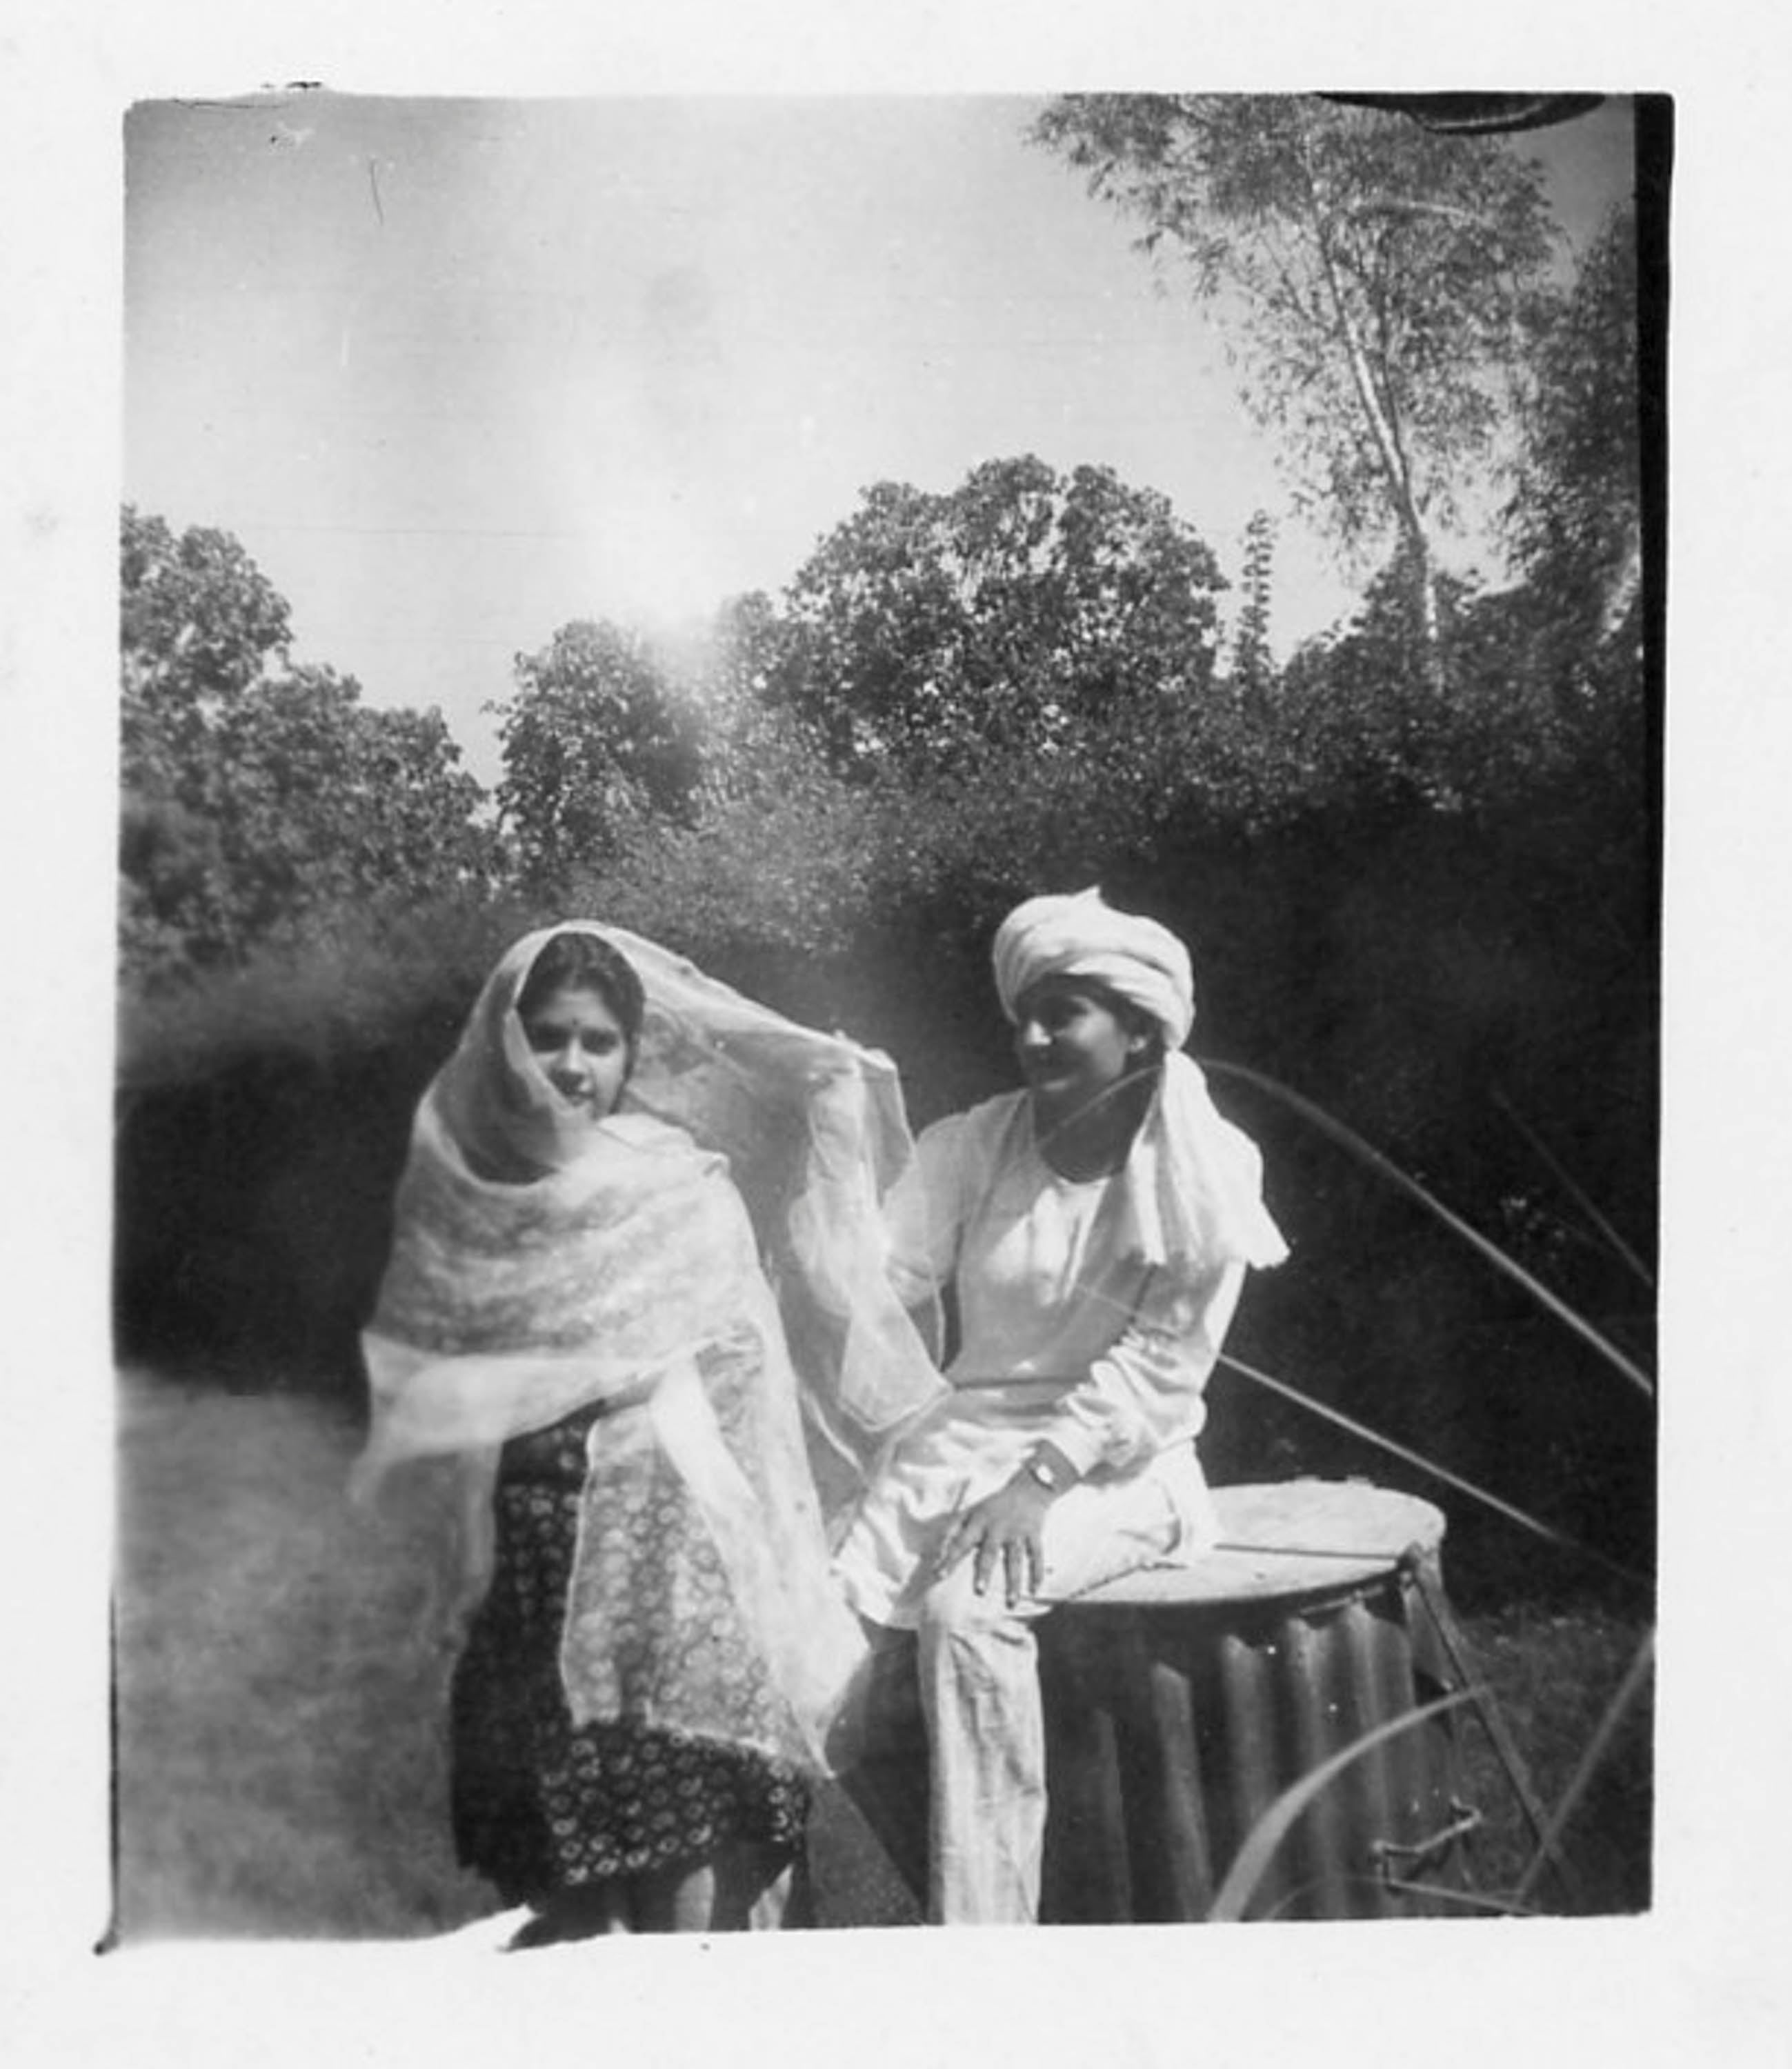 A black and white photograph of a young woman and man, wearing traditional dress in an Indian garden.